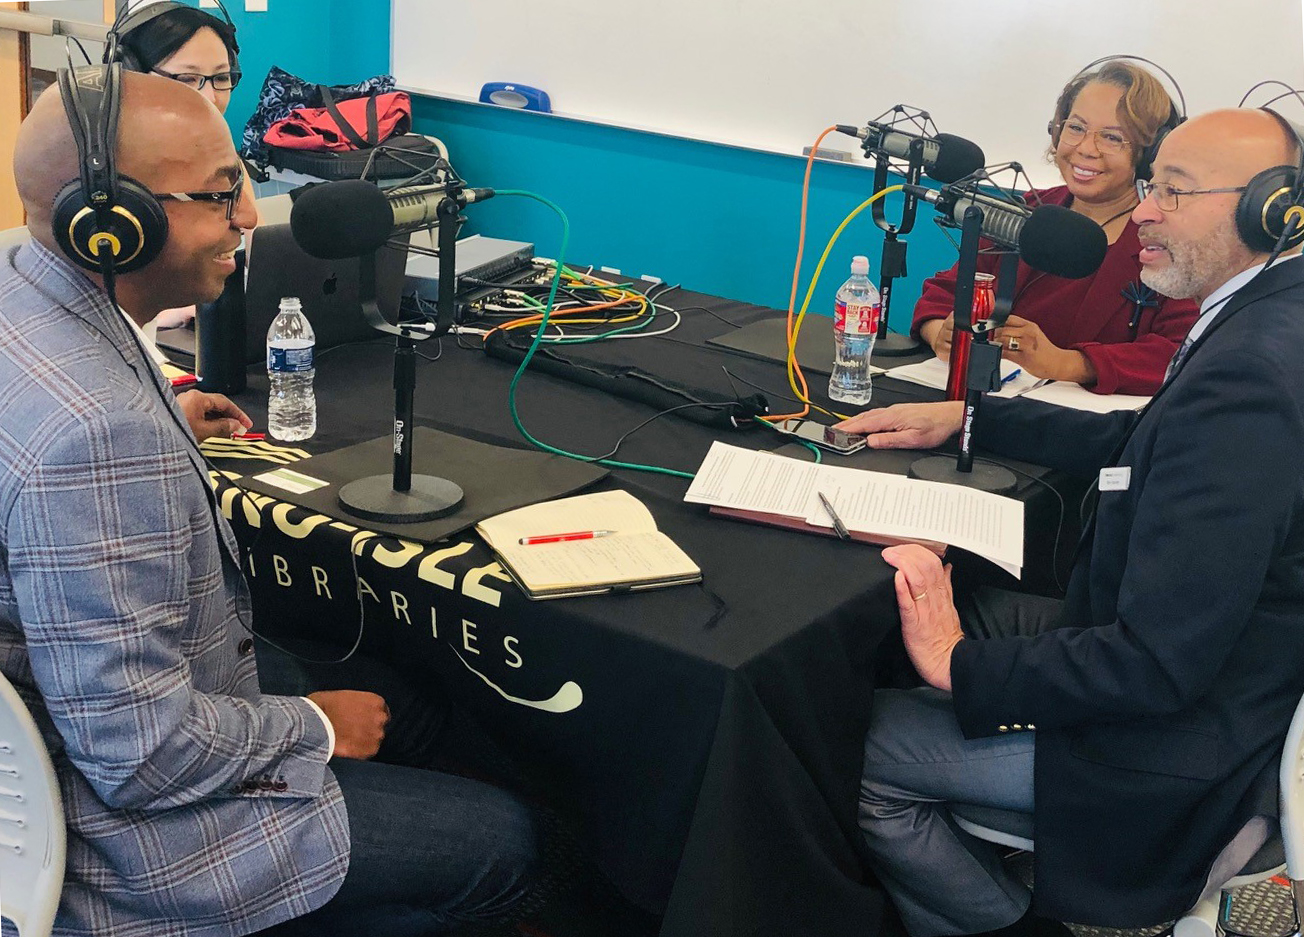 Rodney Clark (left) speaks with Check It Out! podcast host Ken Harvey (right) and special co-host Lynne Varner (second from right) about technology and the Internet of Things.